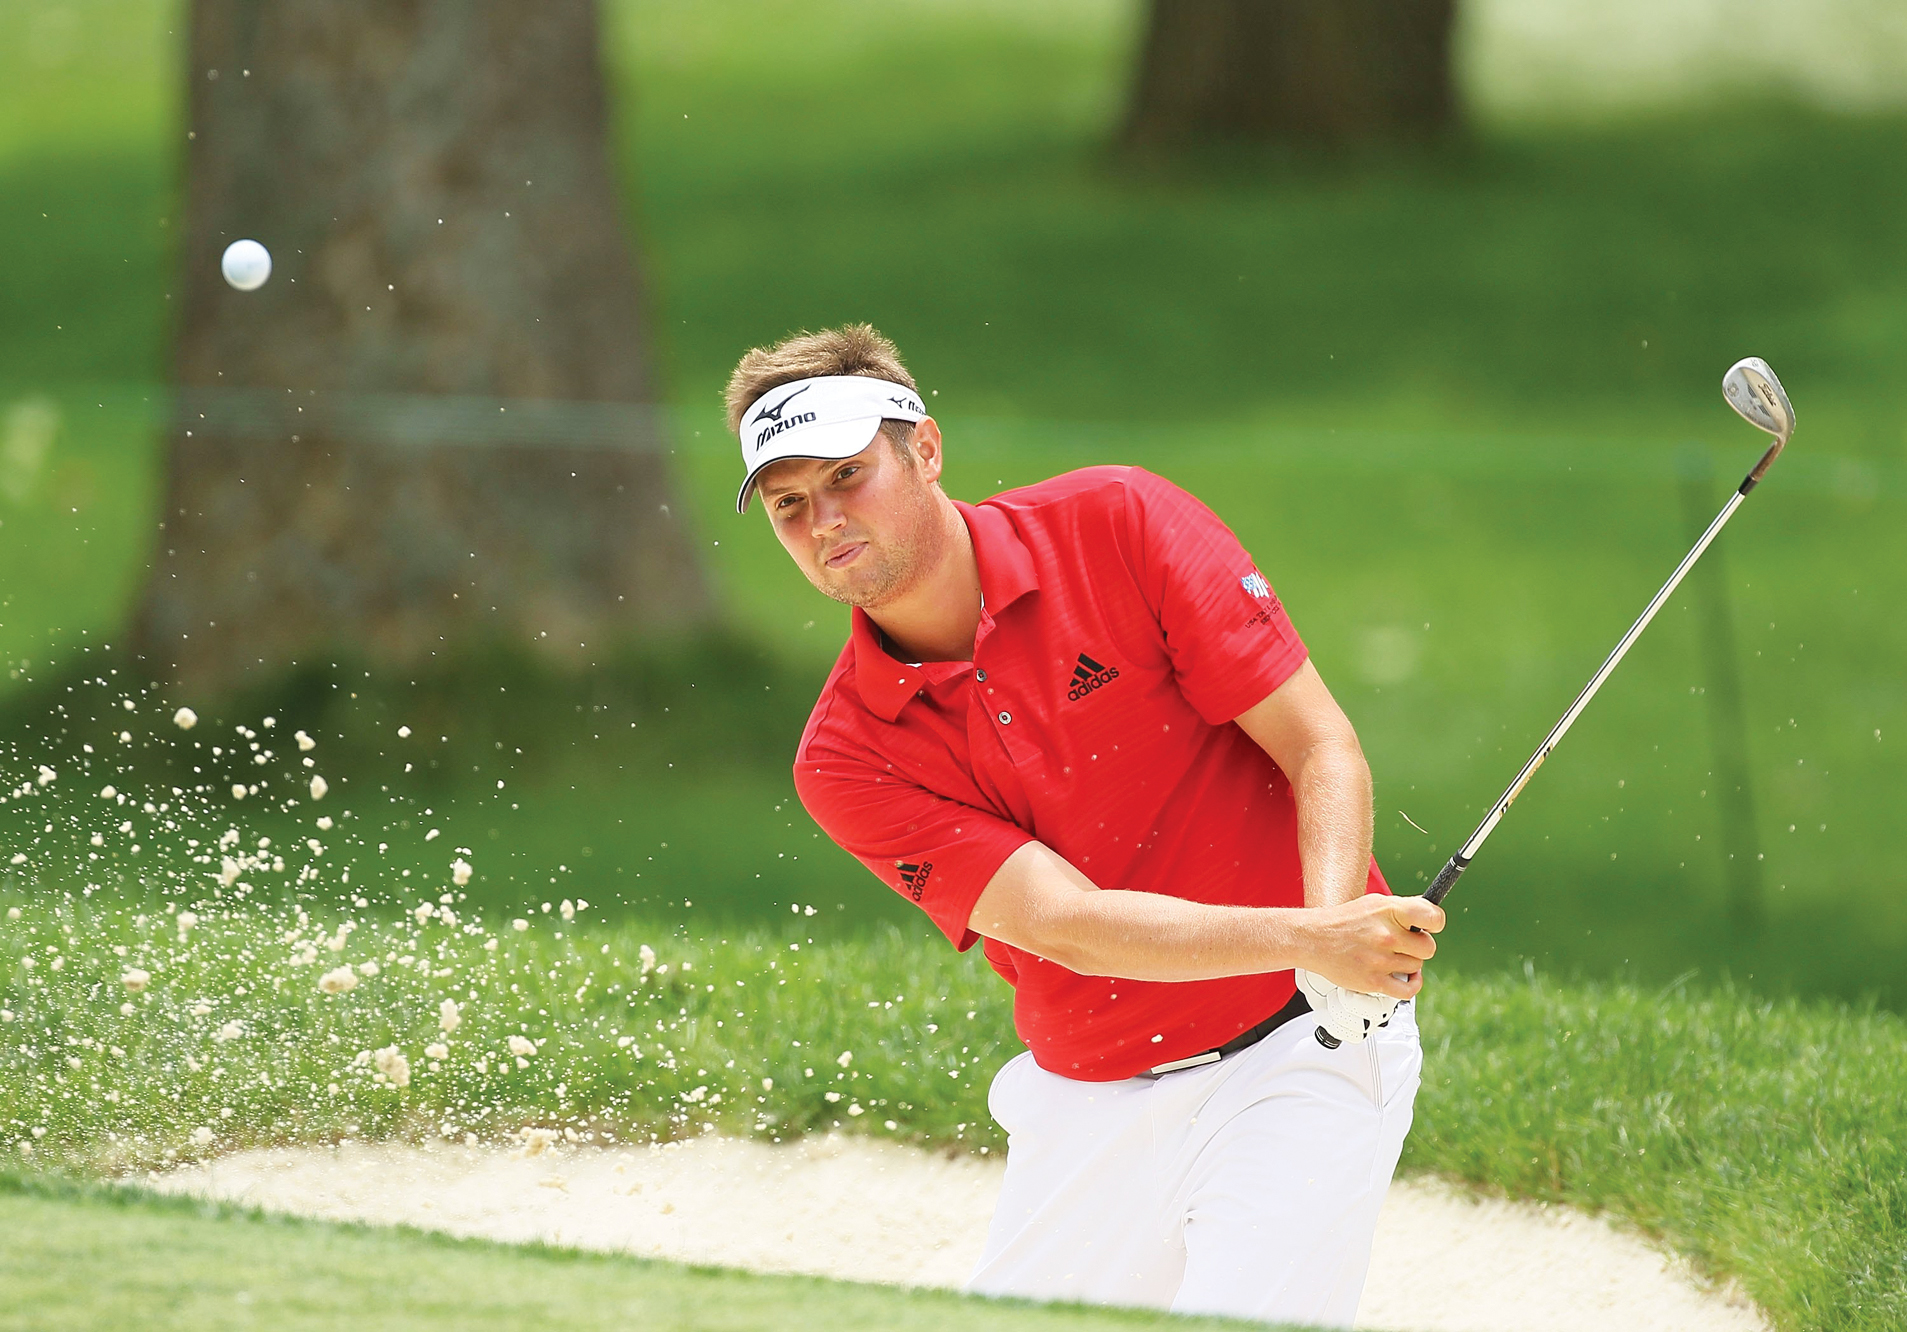 Jeff Overton, still a normal guy in Bloomington, is getting recognized on the PGA Tour – and now as a Ryder Cup player.